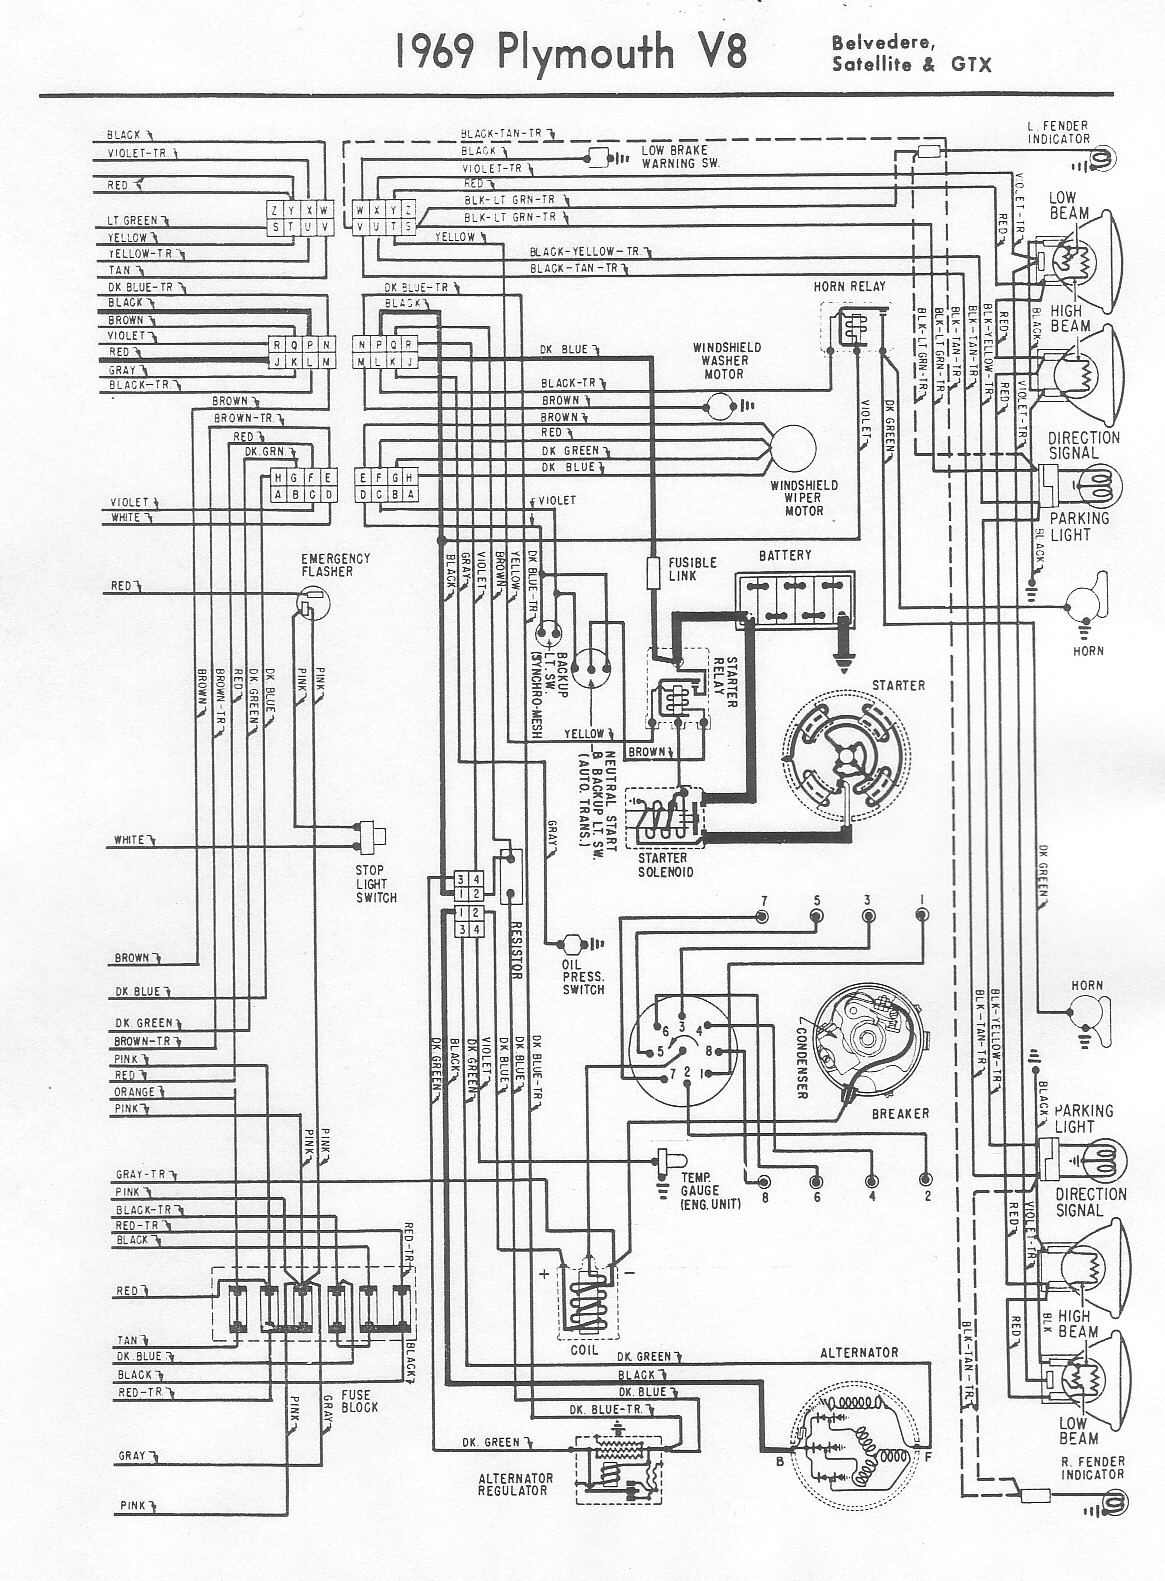 67 Plymouth Barracuda Wiring Diagram Electronicswiring 1986 F150 Fuel Gauge Free Picture 1968 Roadrunner Opinions About 1970 Duster Gtx